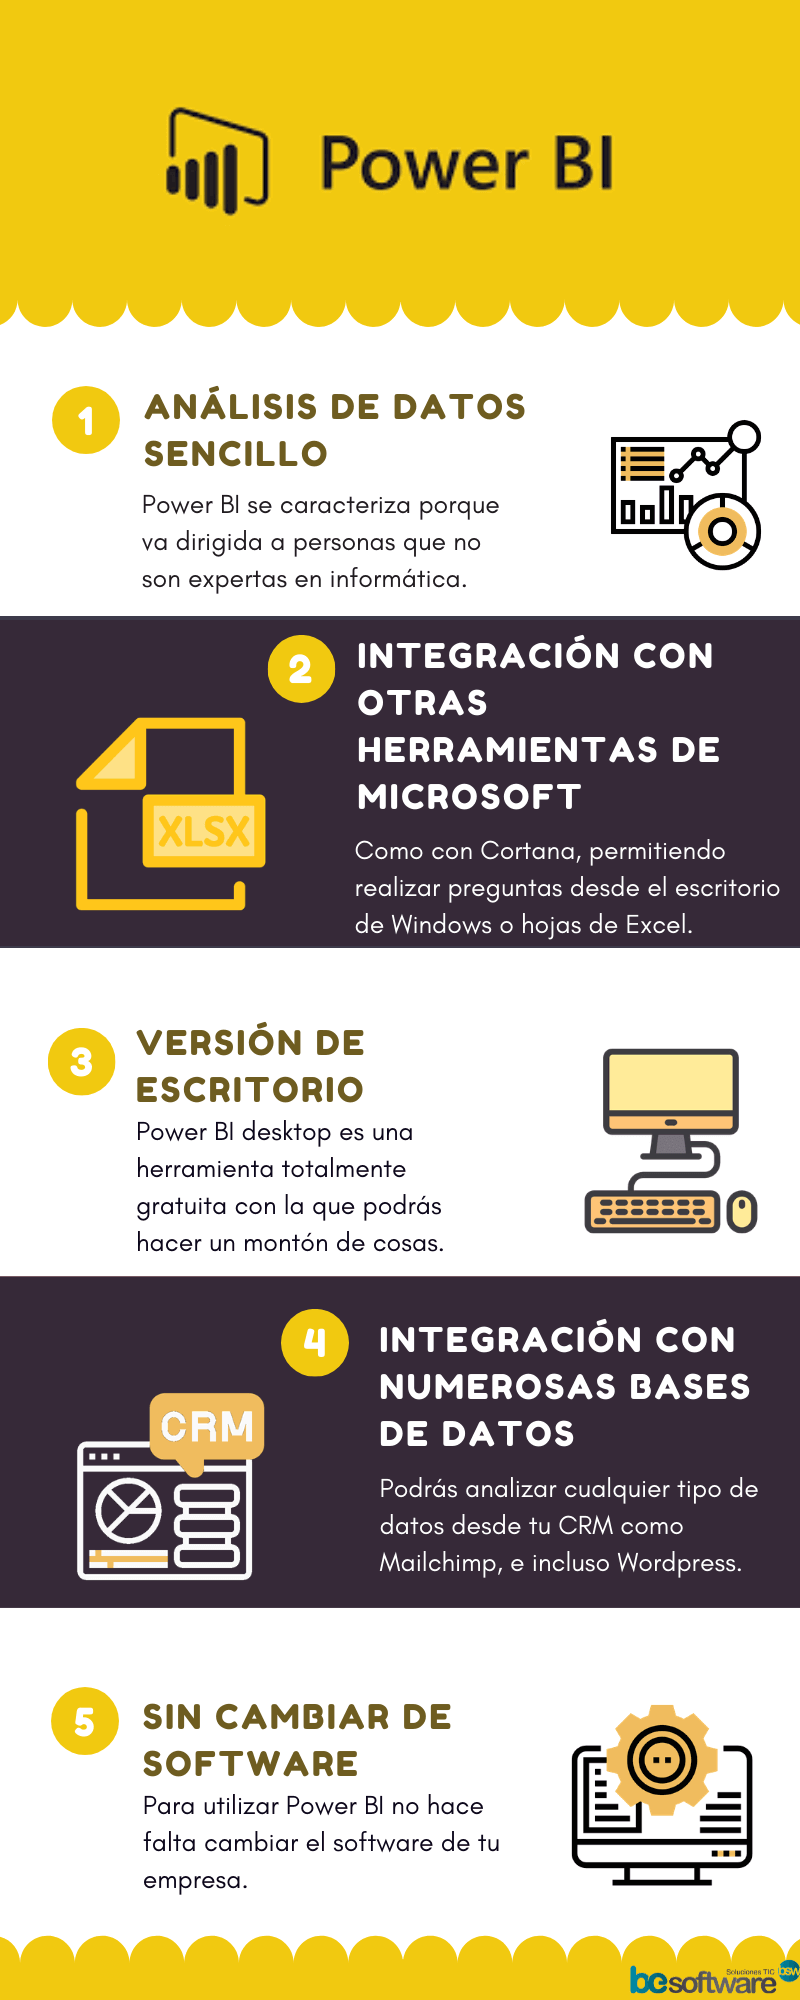 Ventajas de Power BI